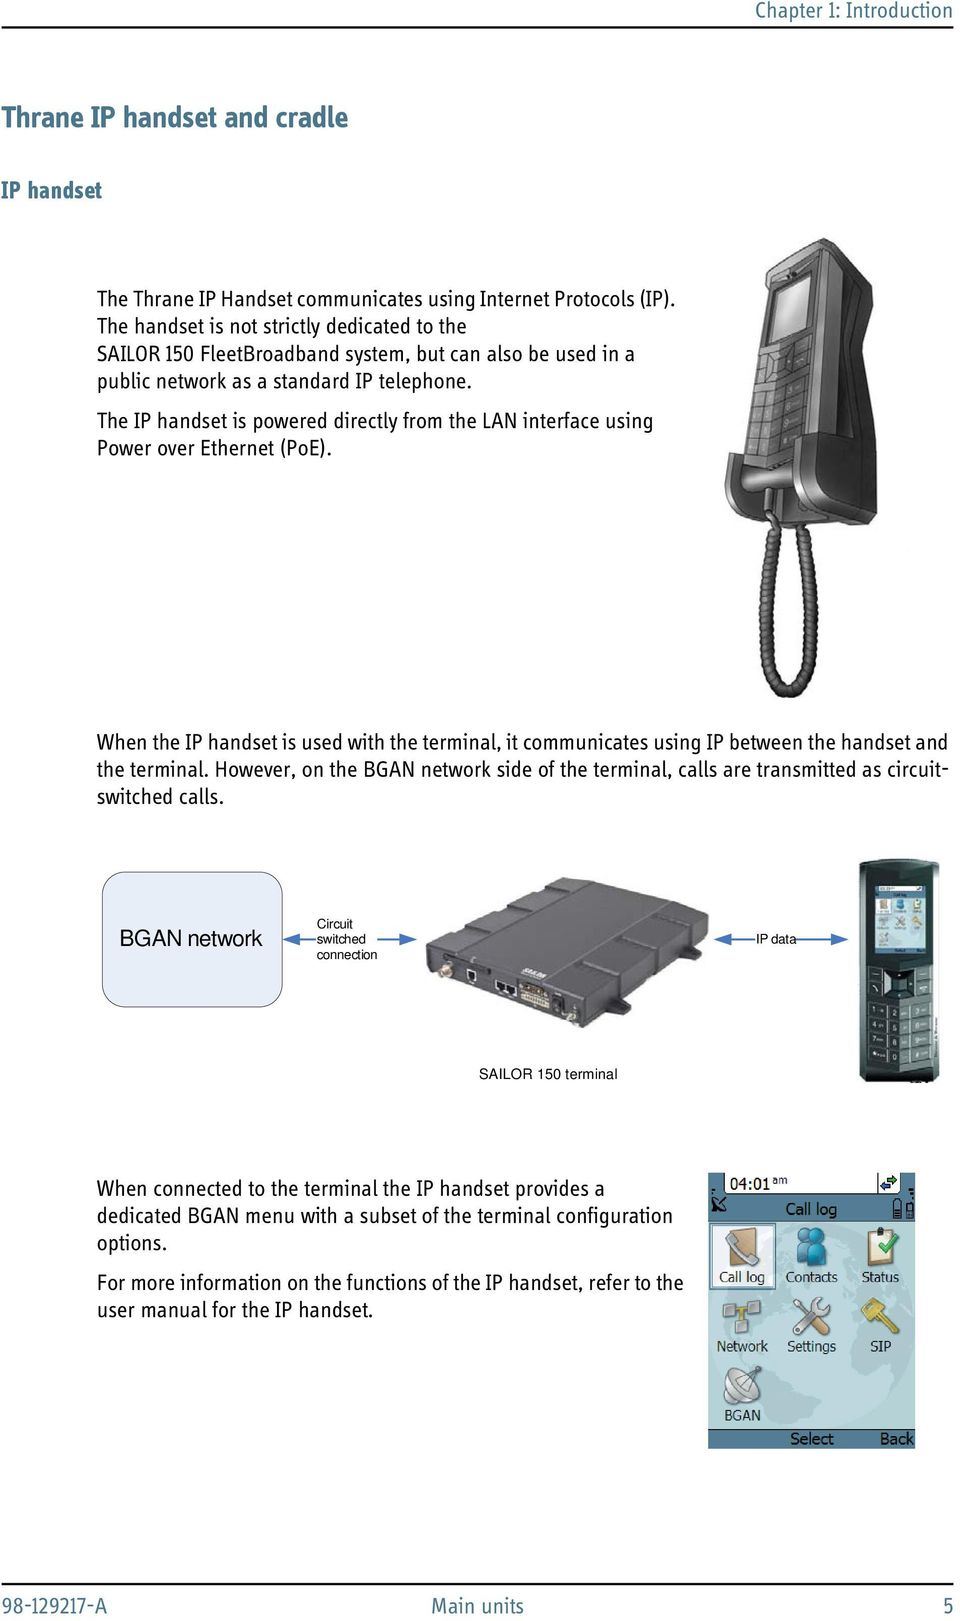 The IP handset is powered directly from the LAN interface using Power over Ethernet (PoE). When the IP handset is used with the terminal, it communicates using IP between the handset and the terminal.